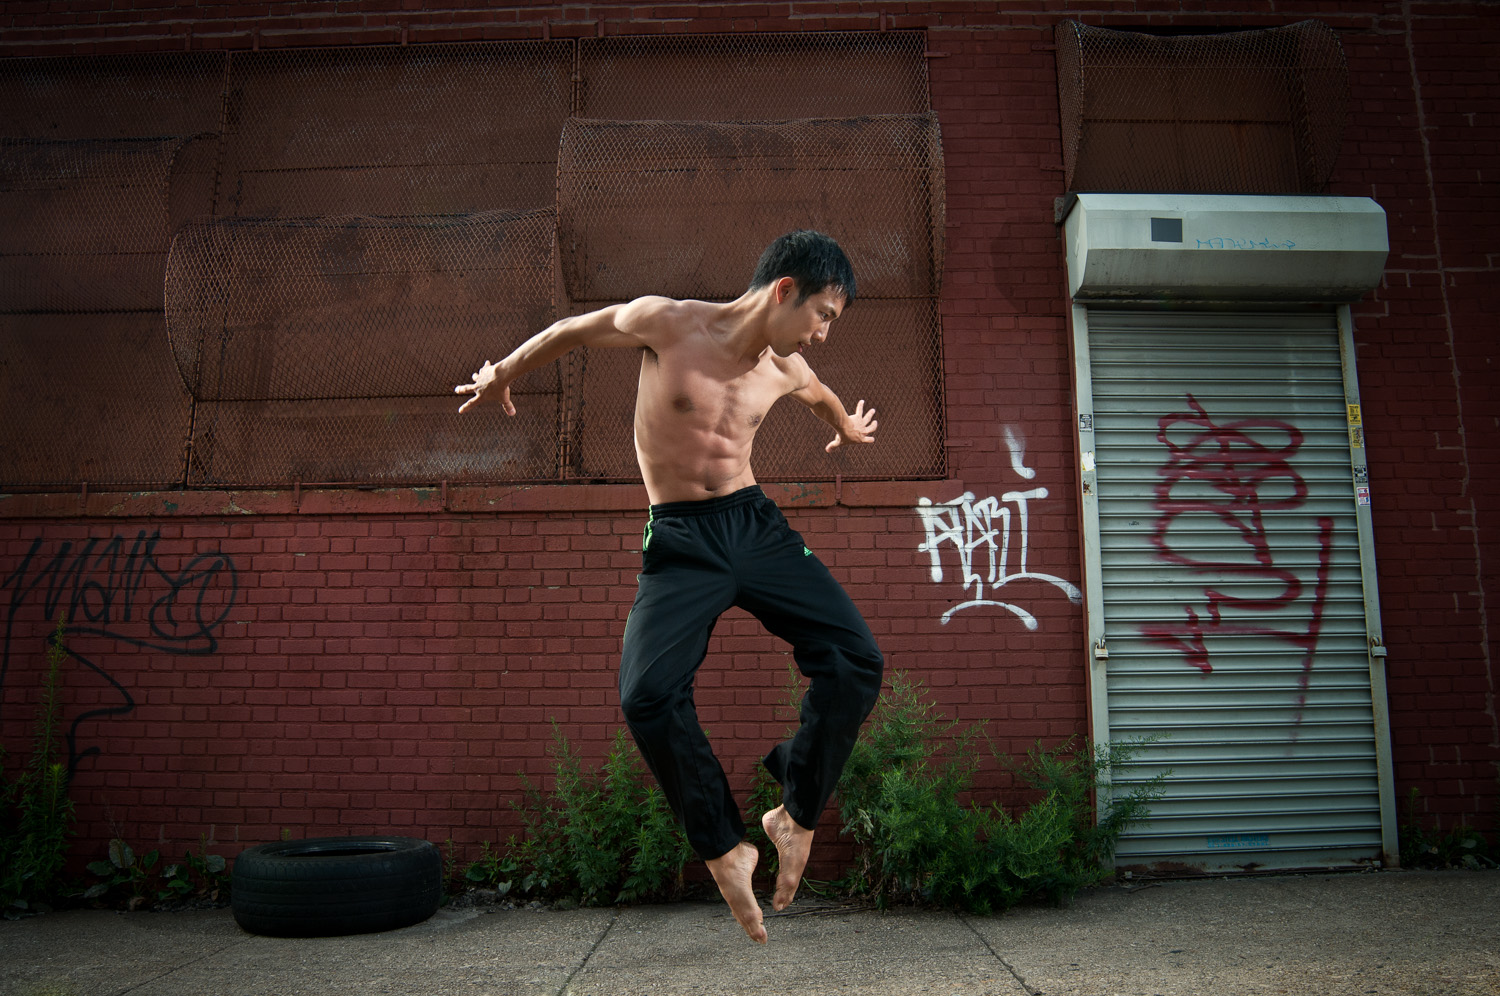 Portrait photograph of male dancer jumping